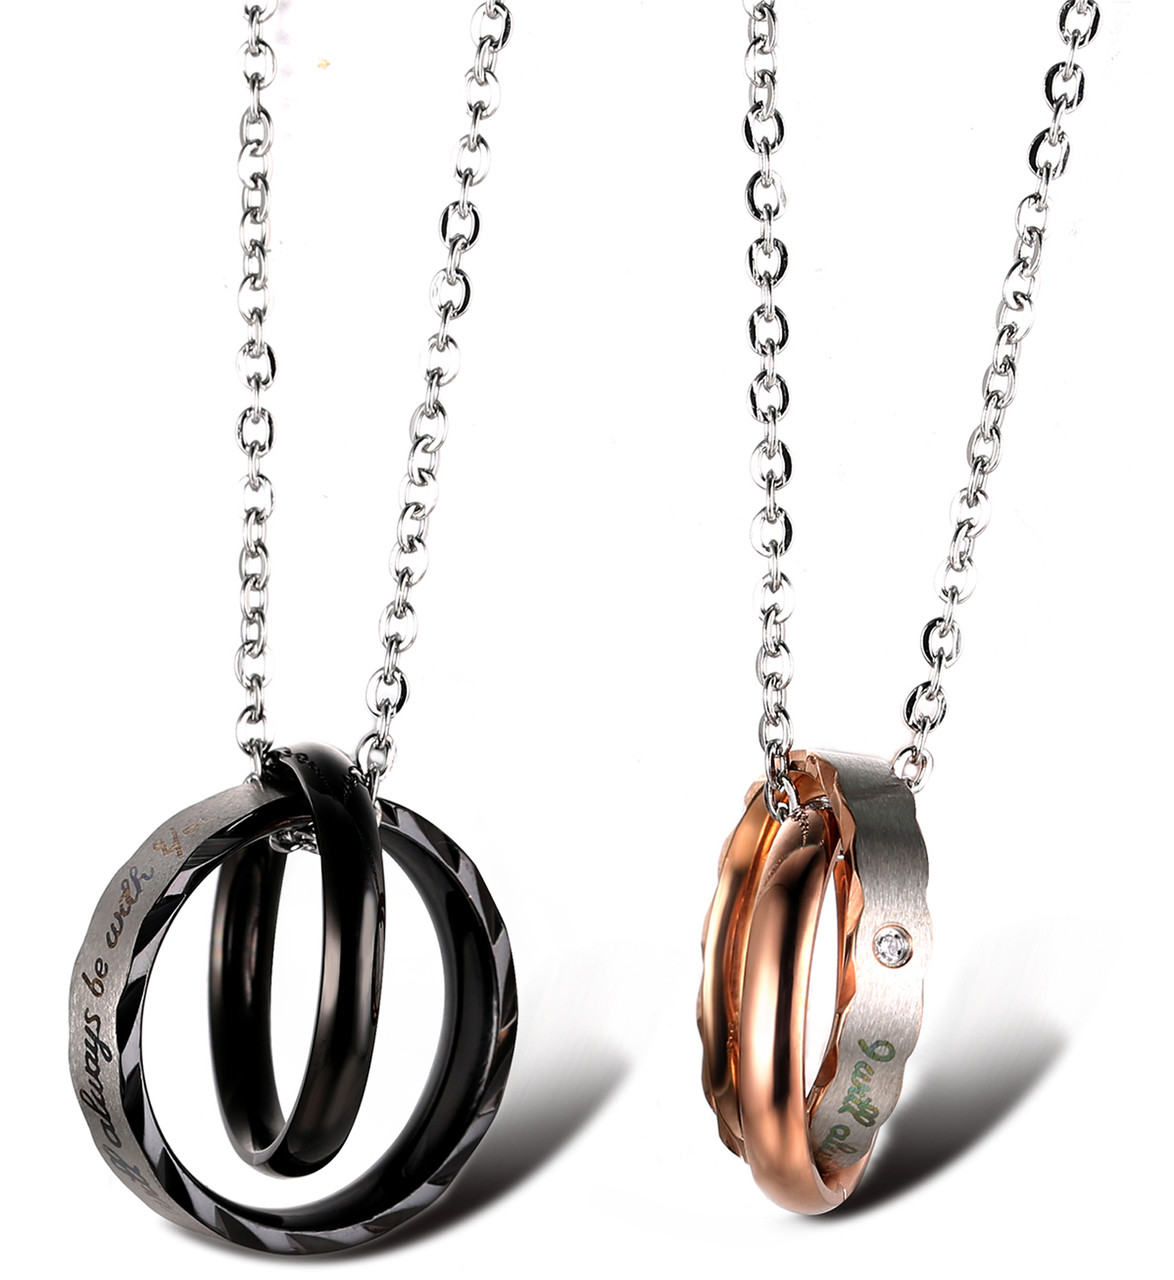 for with limited men the necklace jewelry colors stainless products fishbone titanium pendant chain steel mimeng supply